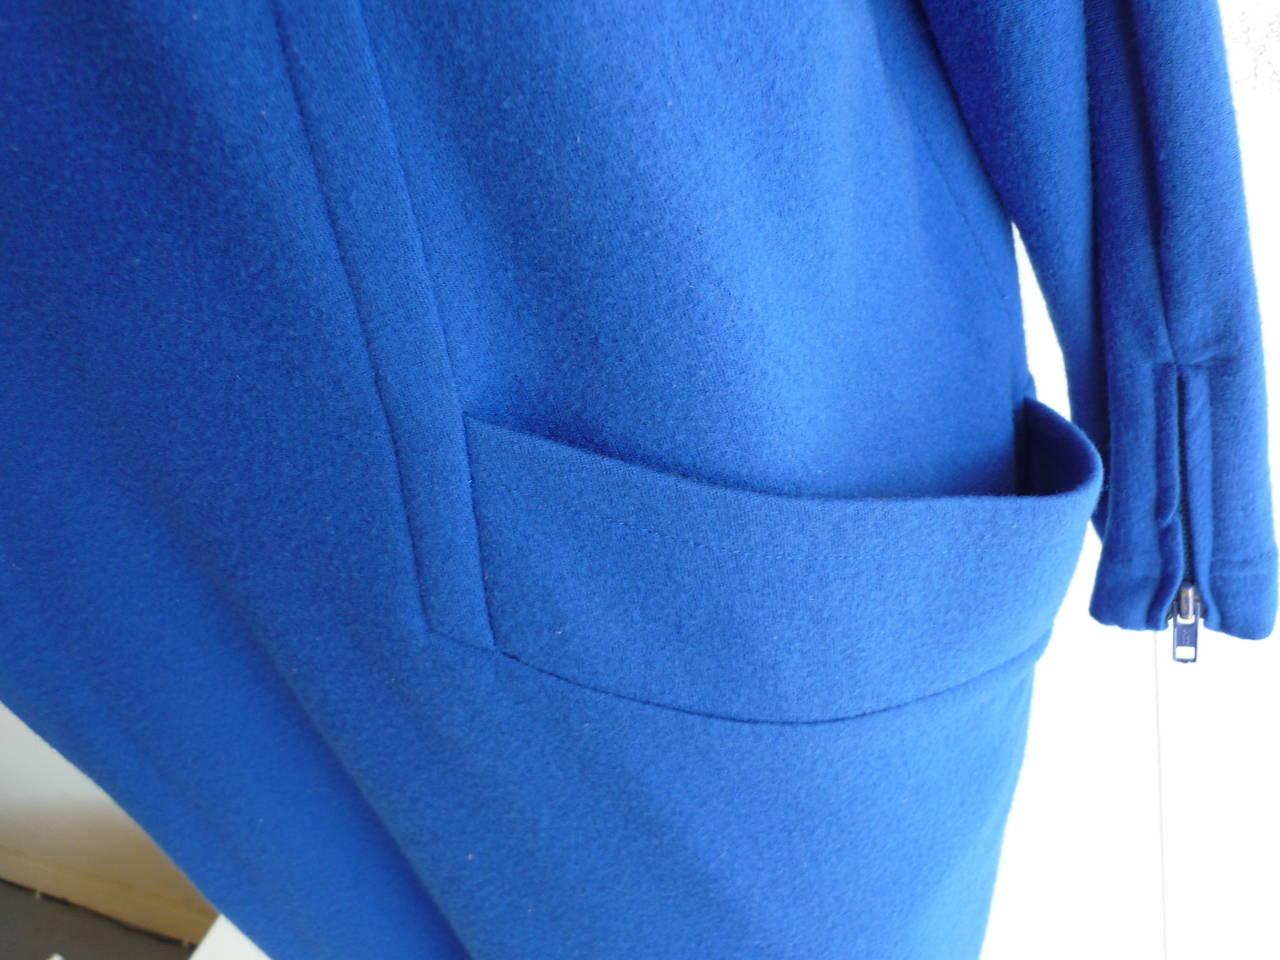 1990s Byblos Cobalt Blue Wool Dress  (44 Itl) In Good Condition For Sale In Port Hope, ON